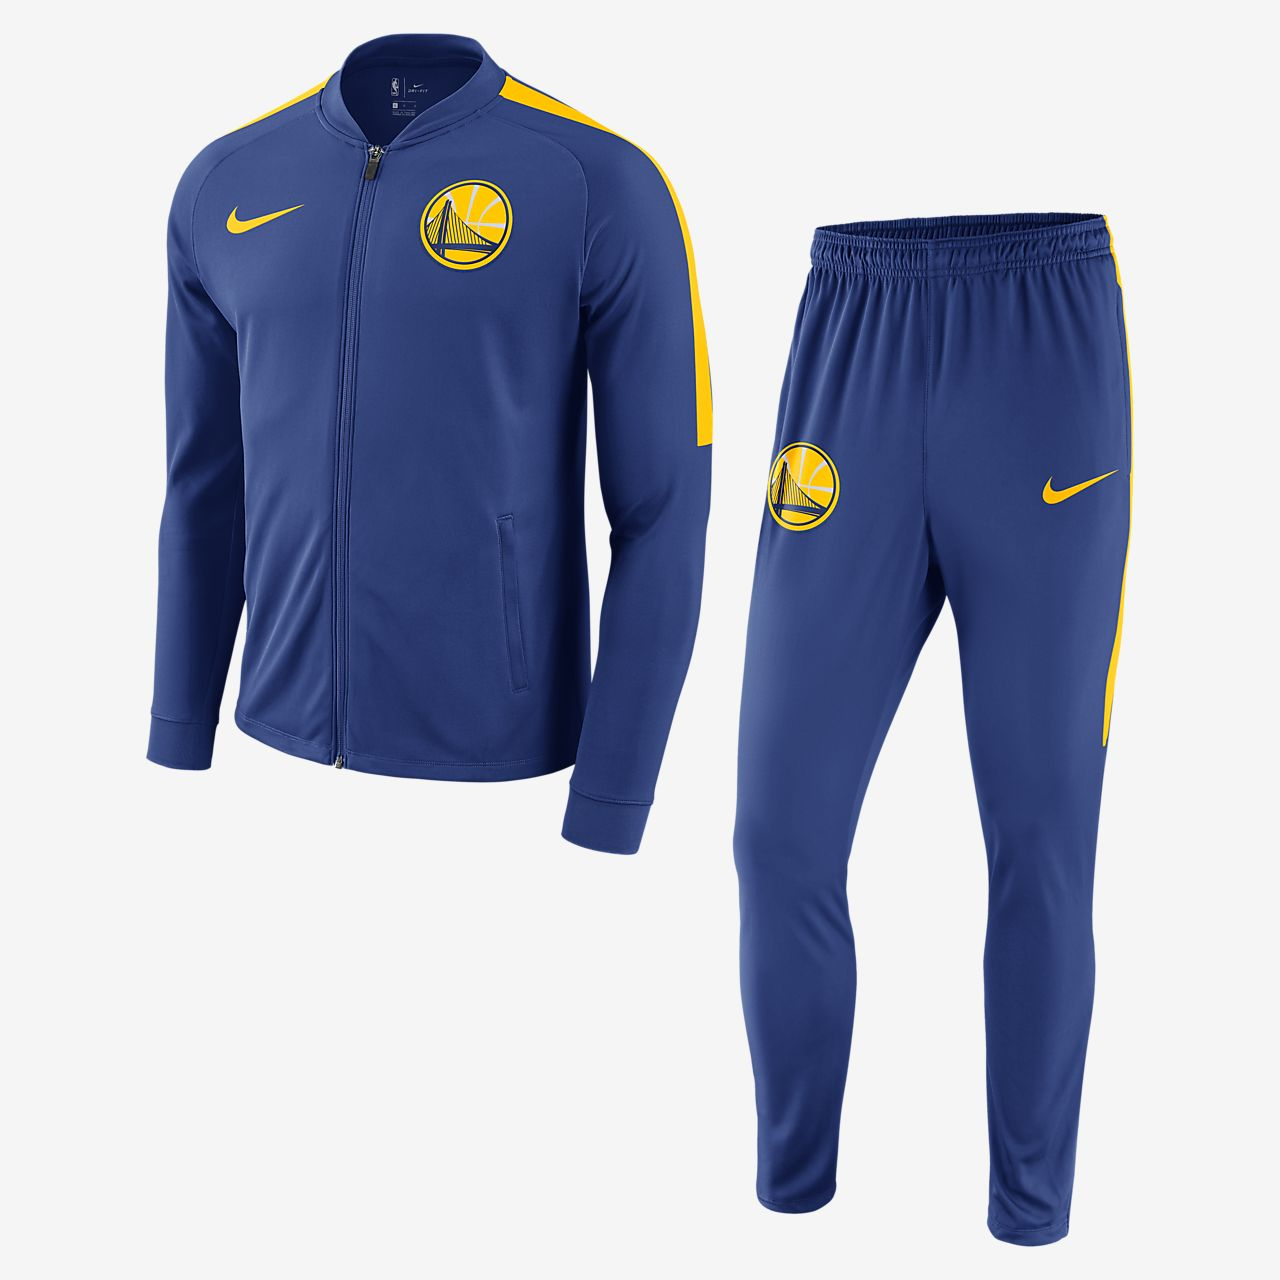 more photos bb7c3 52db2 ... Golden State Warriors Nike Dry Men s NBA Track Suit